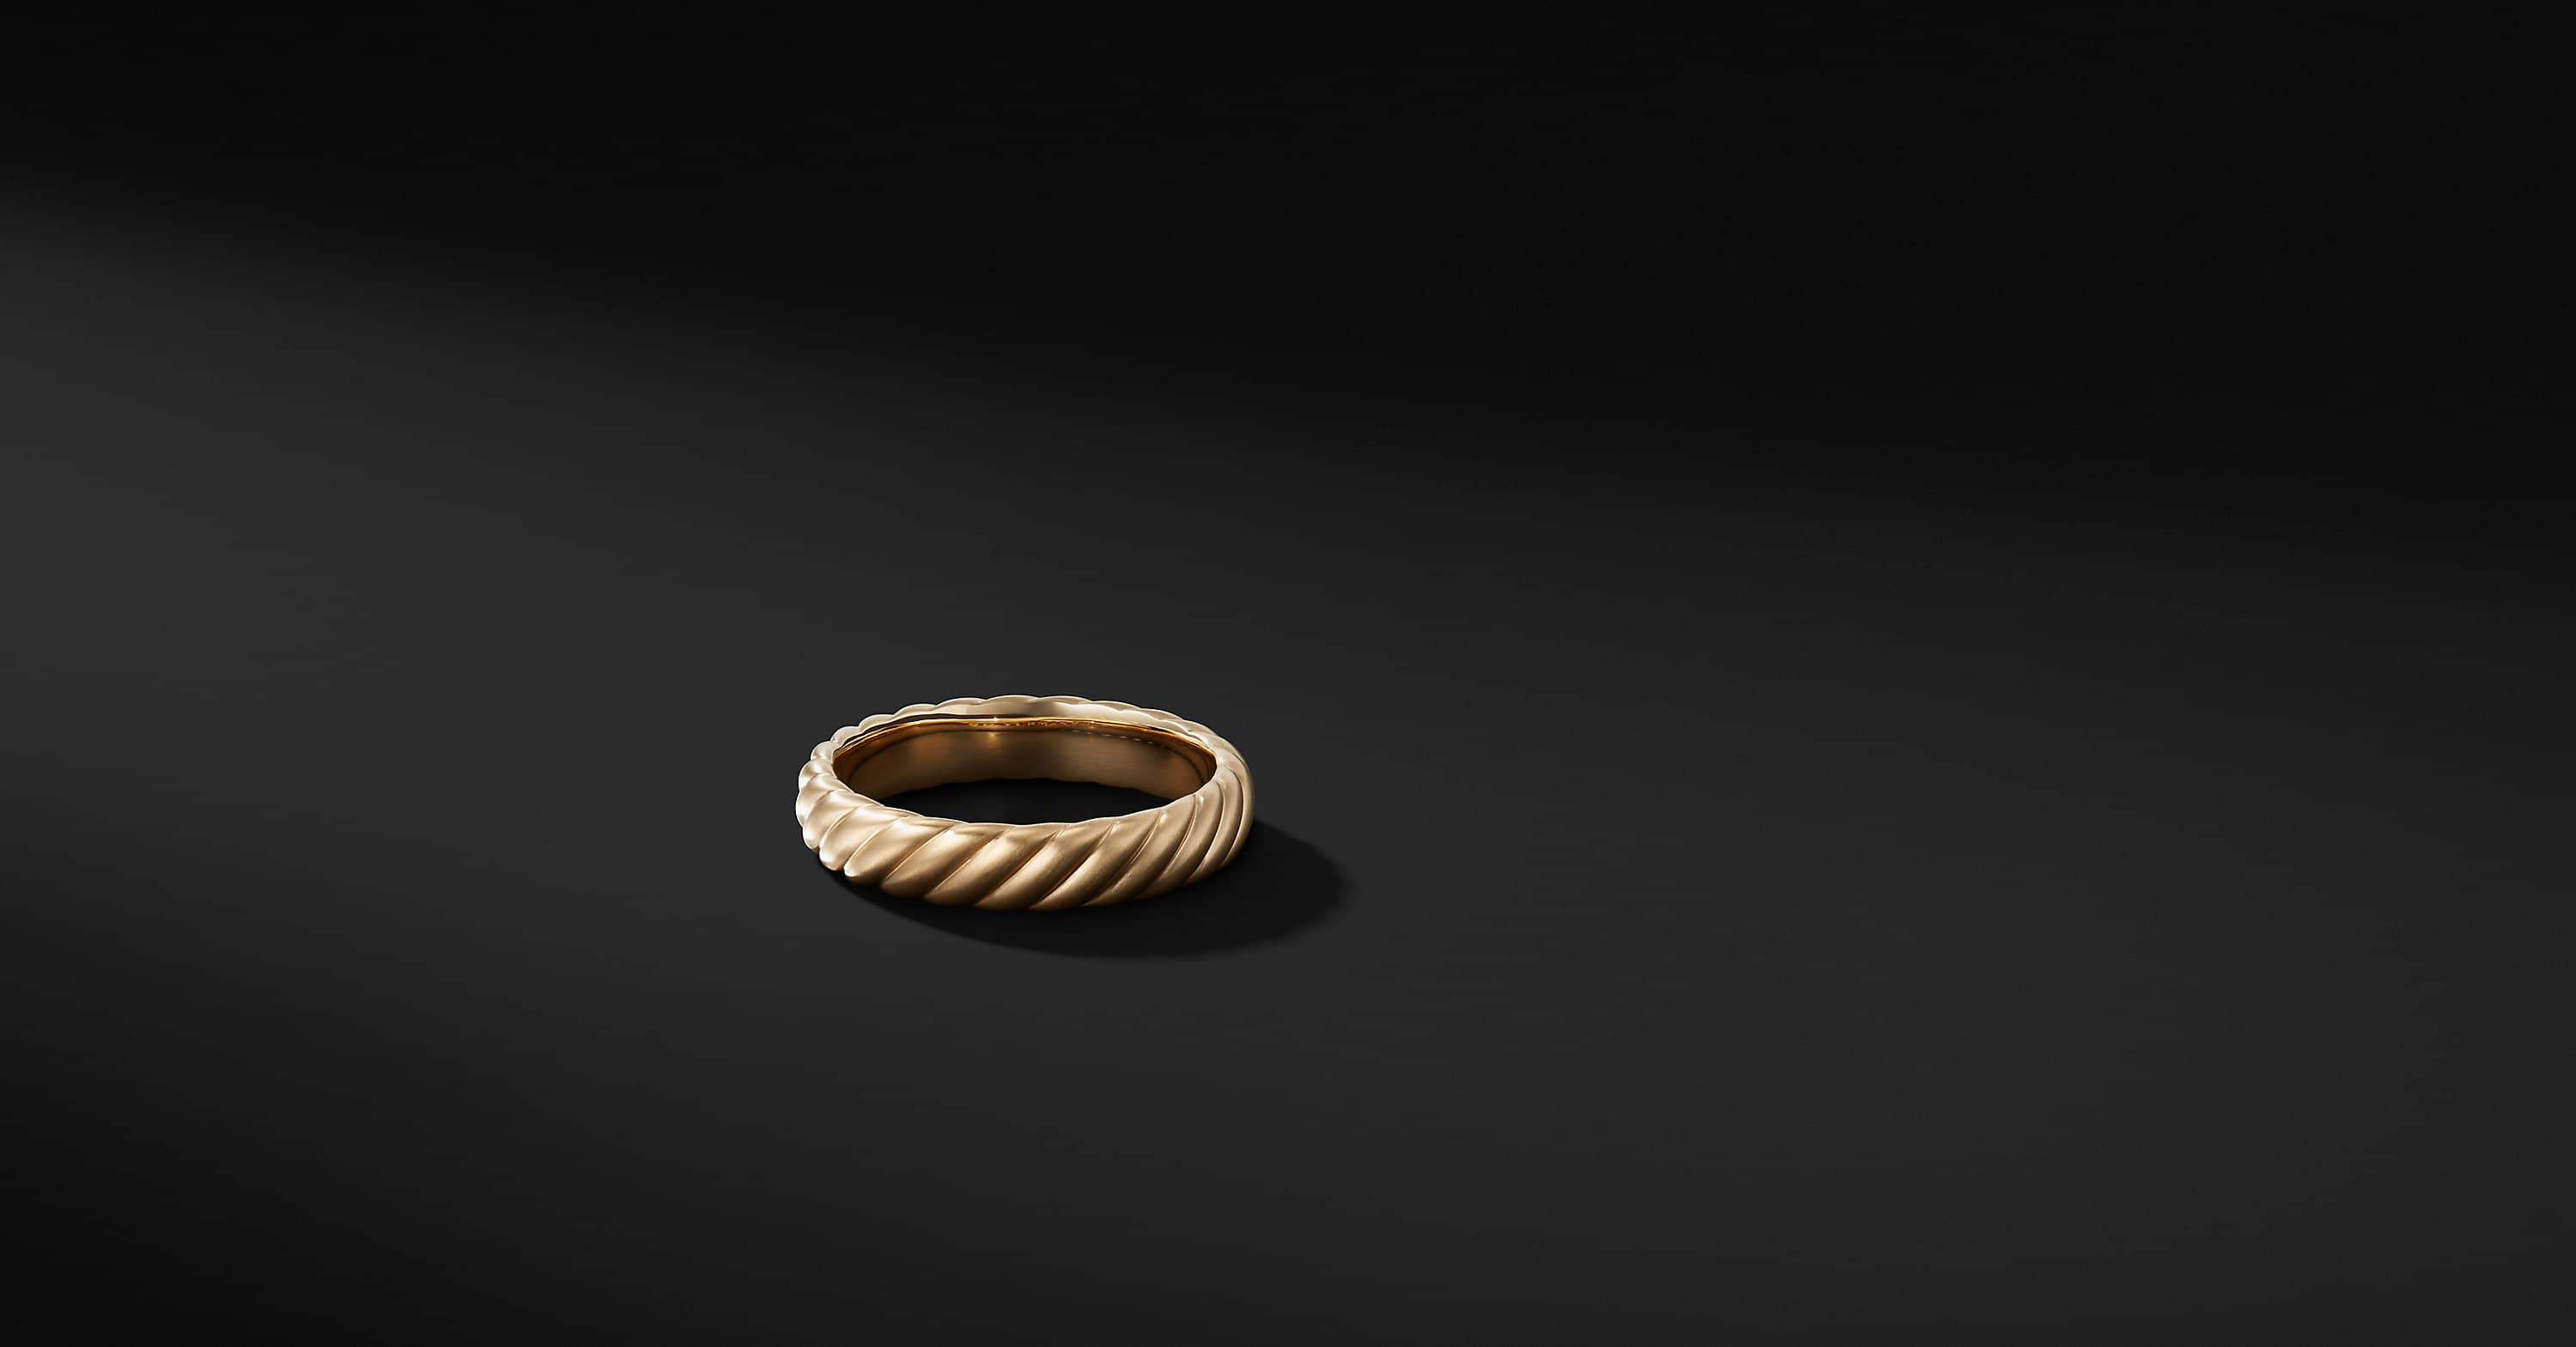 Cable Band in 18K Gold, 5mm